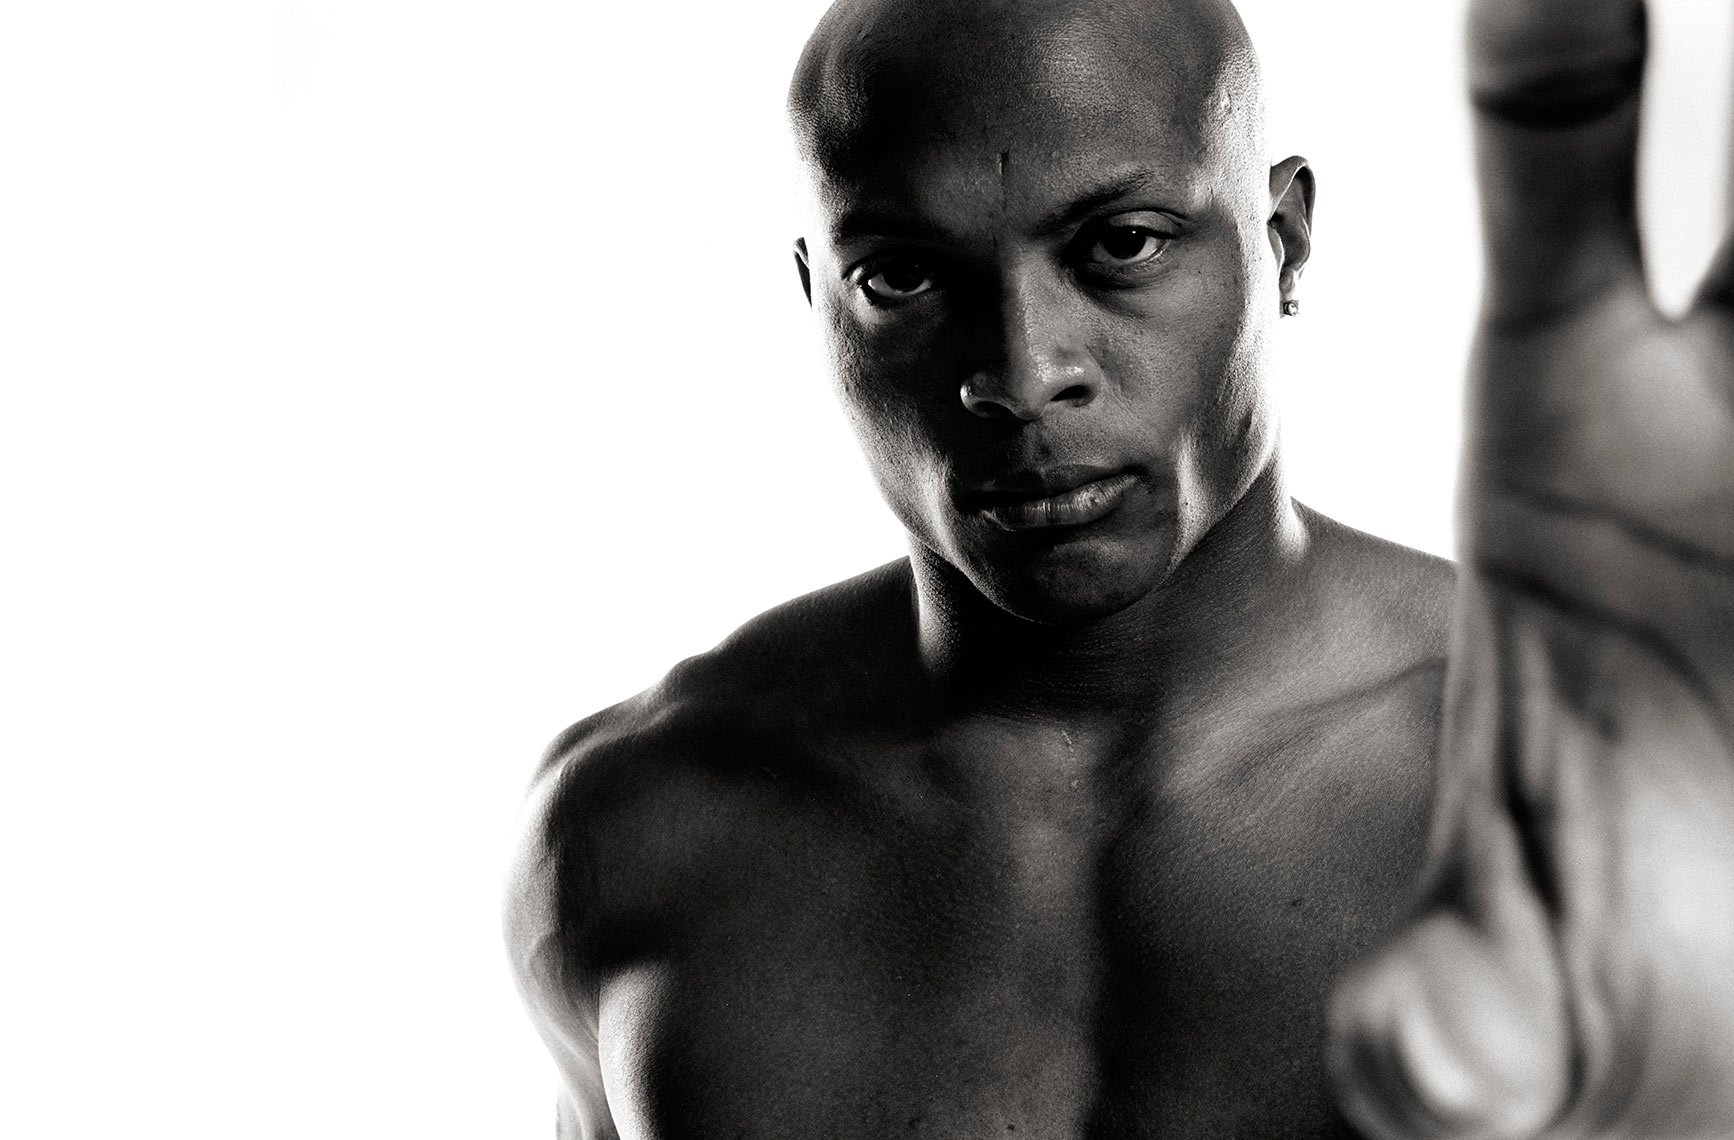 eric_martin_photography_athletes_Eddie George 01